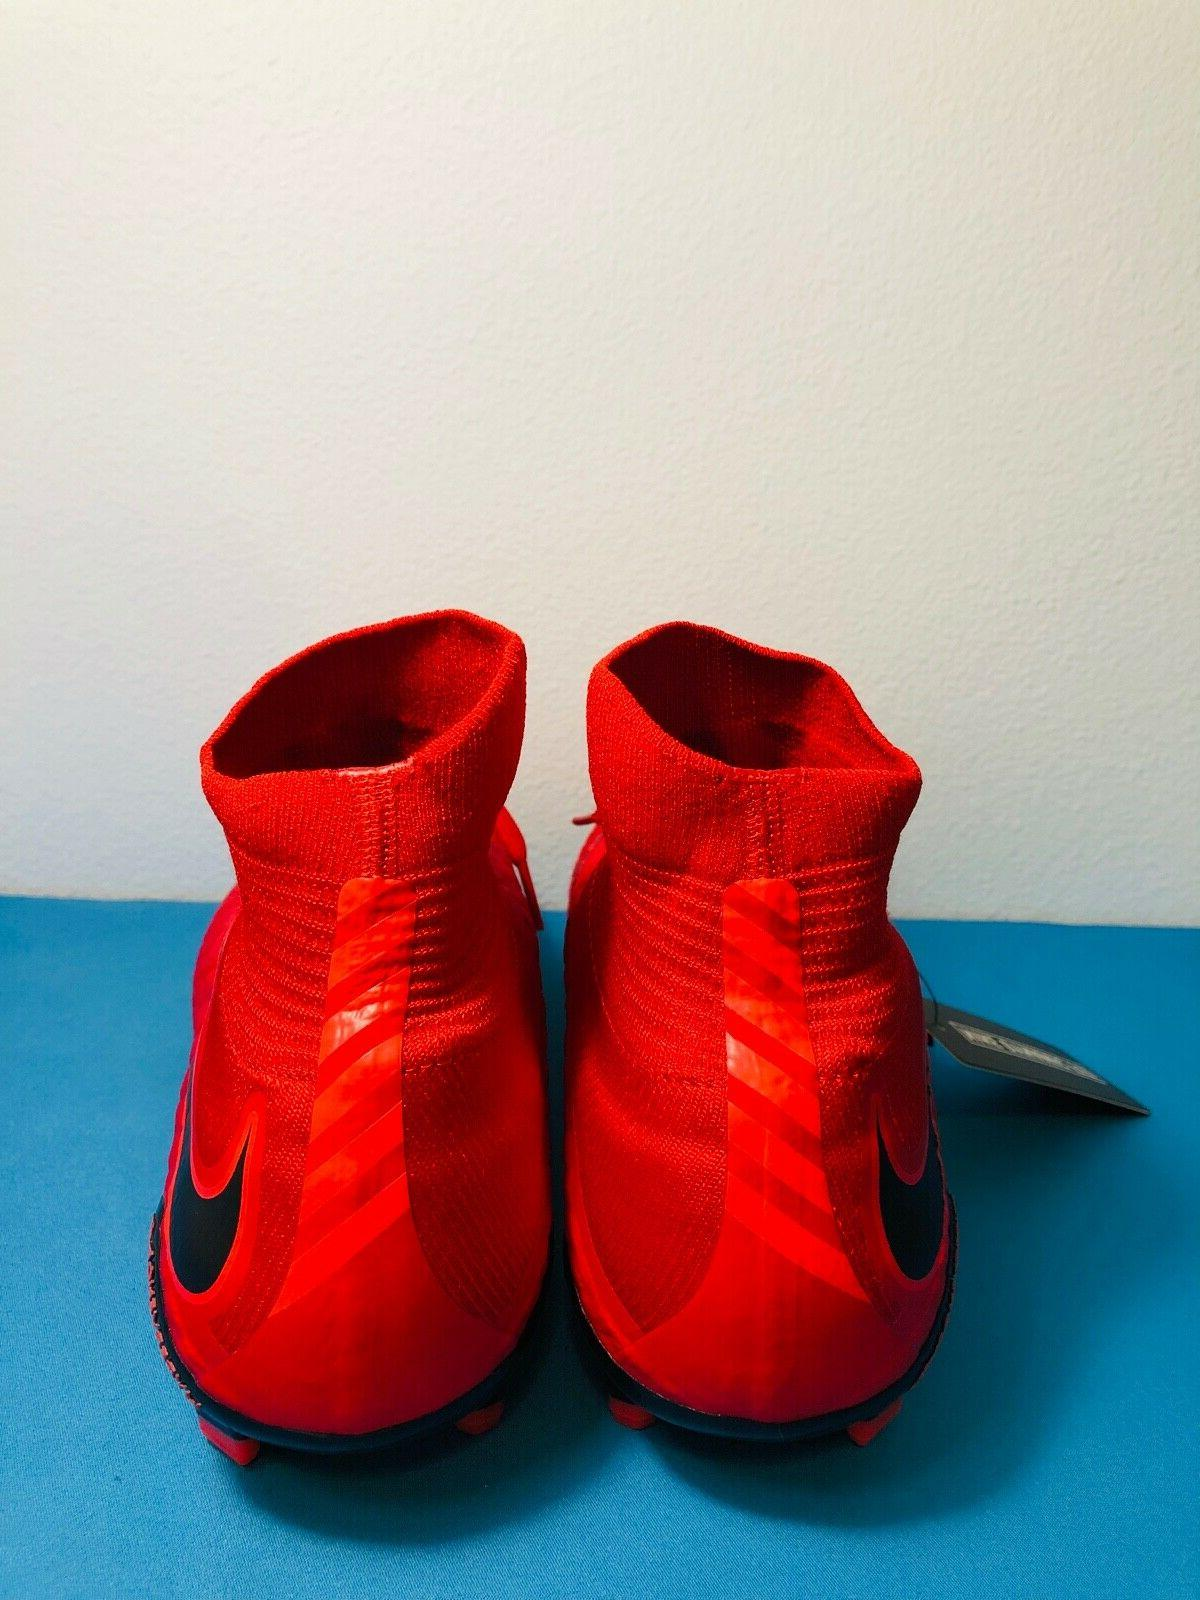 Nike III 3 Soccer Cleats, Red Crimson MSRP